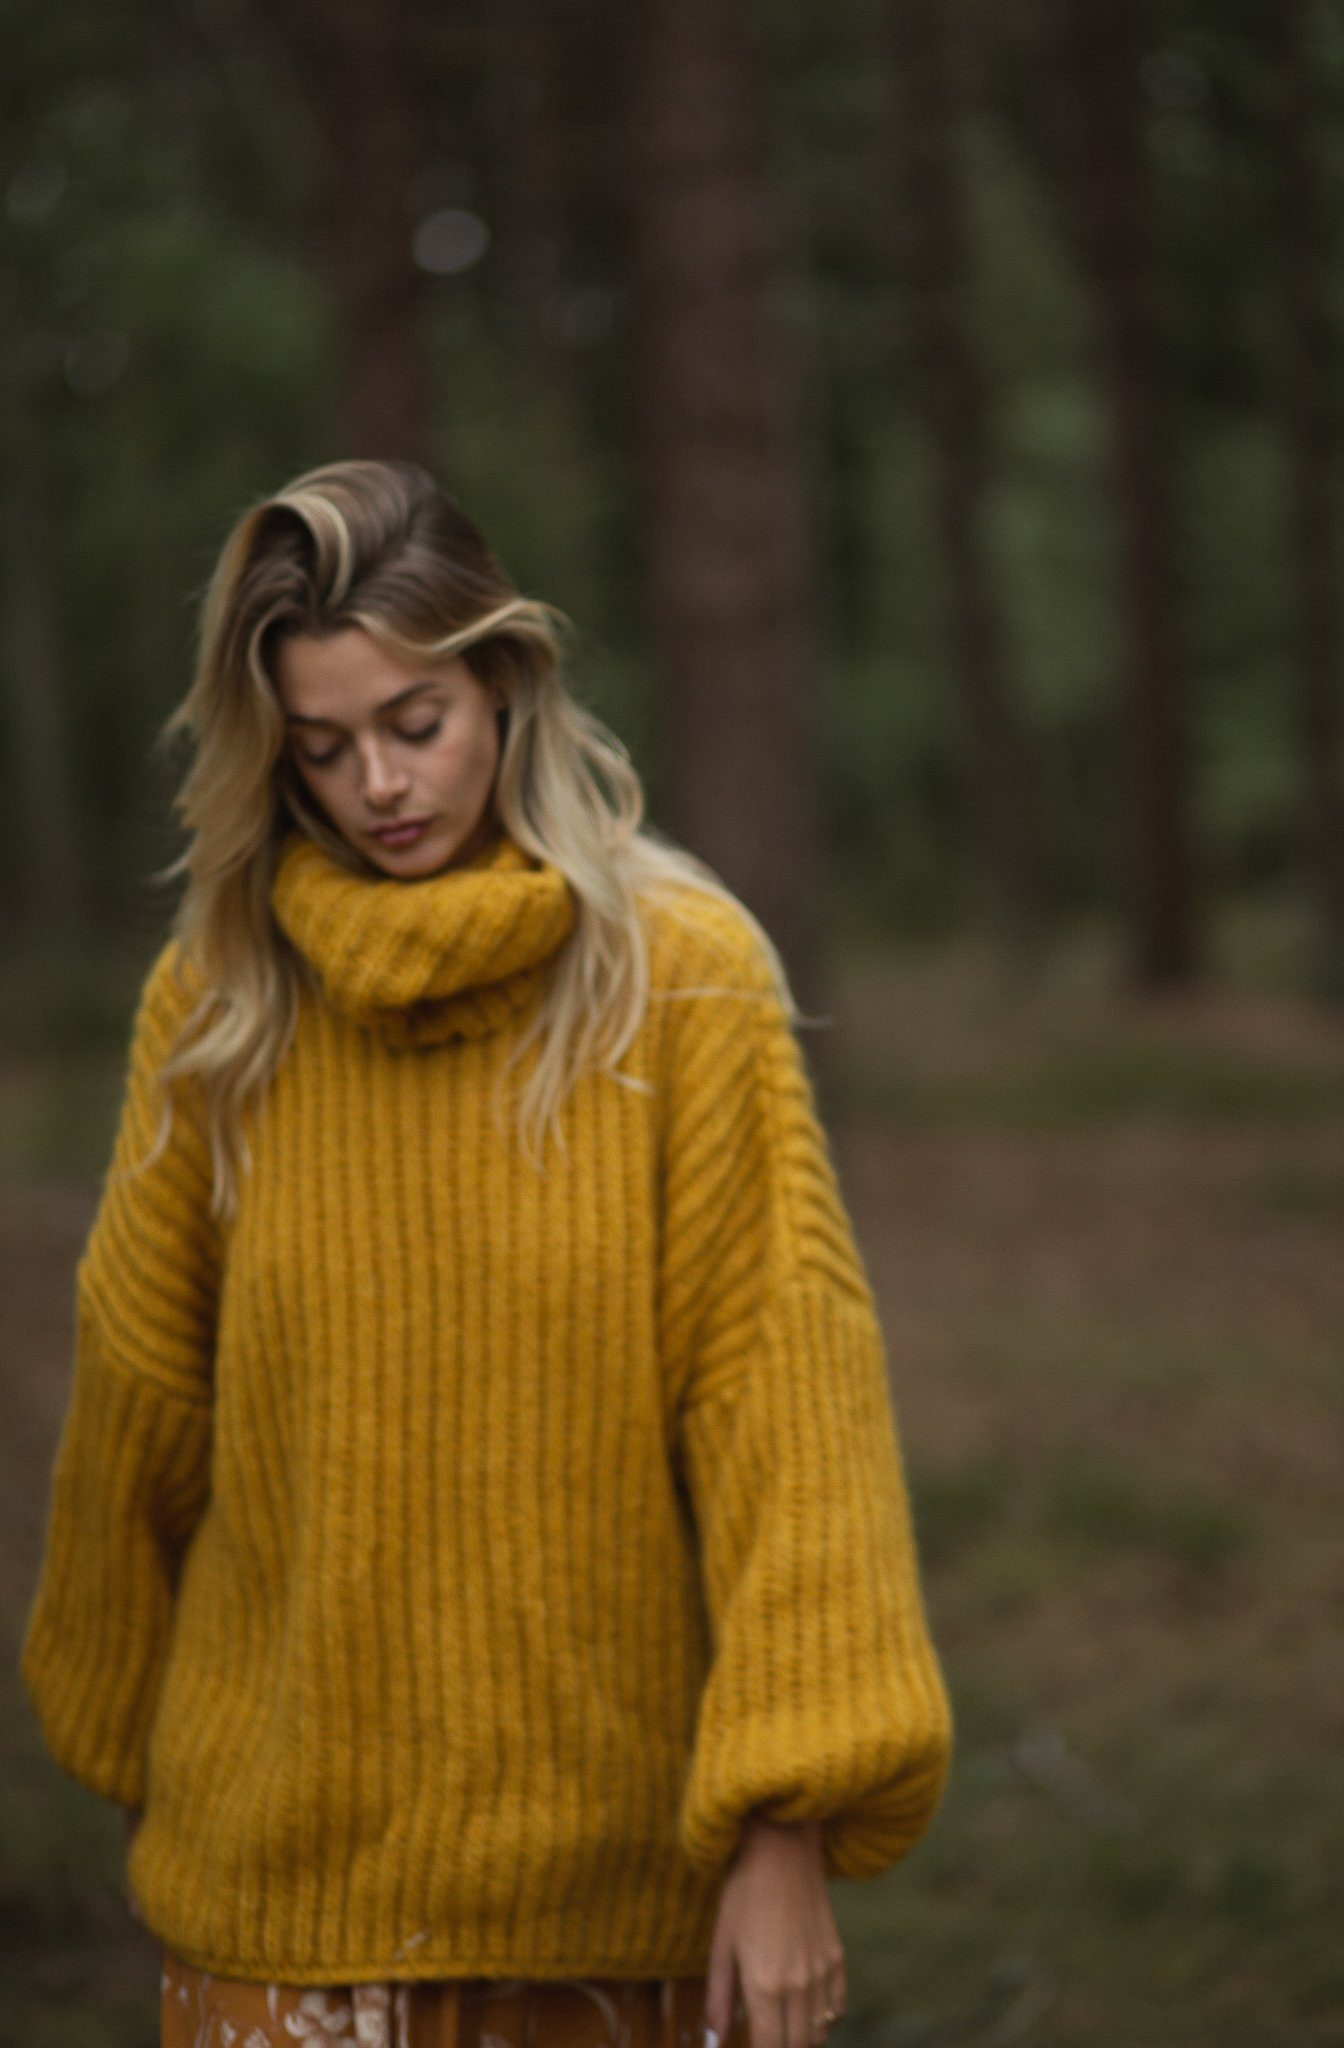 Annette Sweater - Mustard, [product_type]- Poppy Field the label